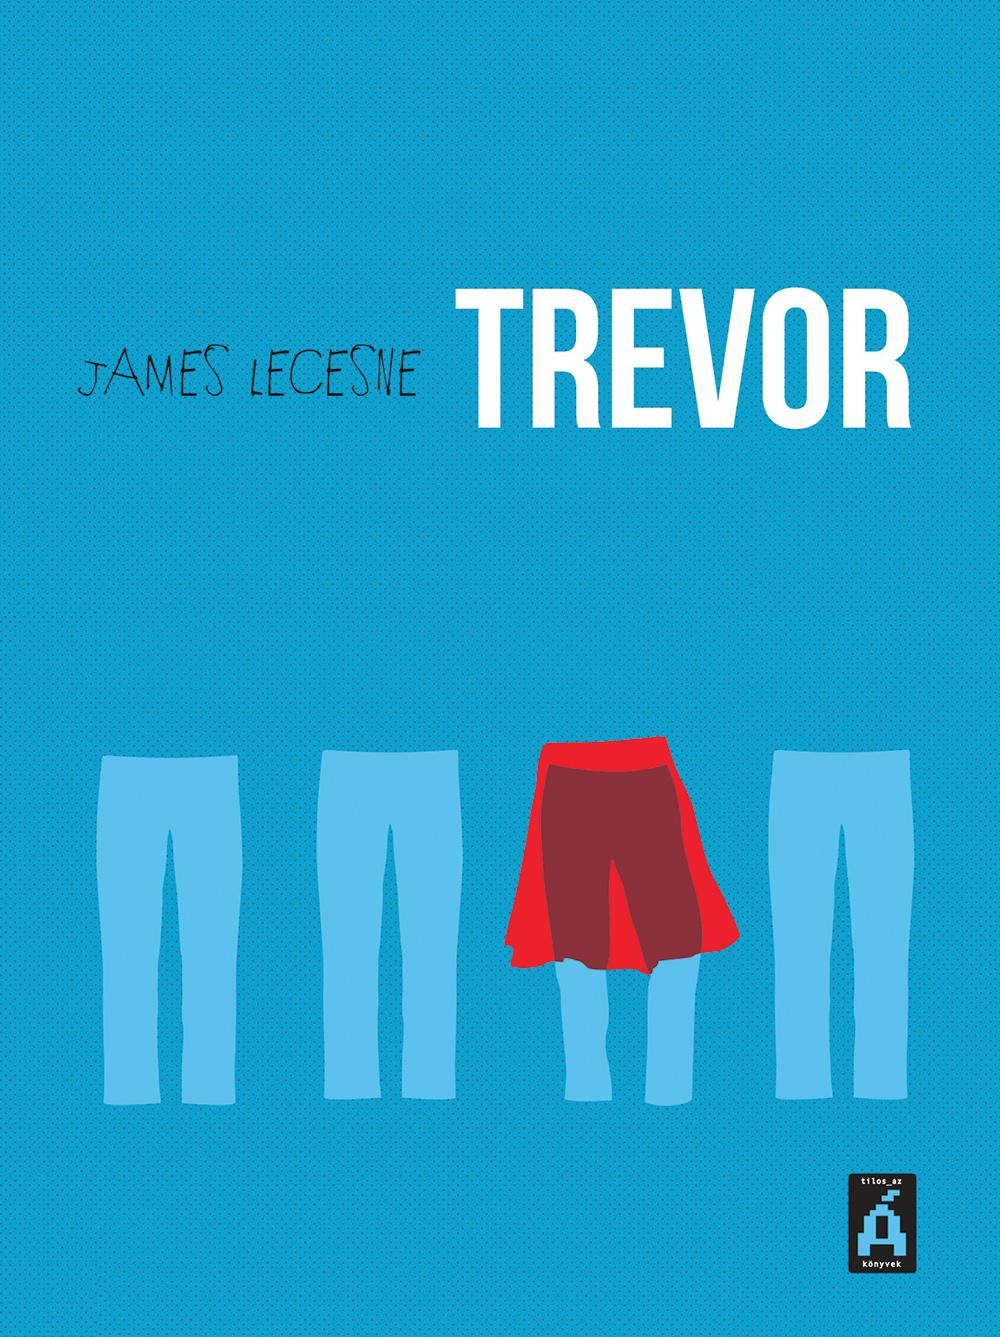 LECENSE, JAMES - TREVOR